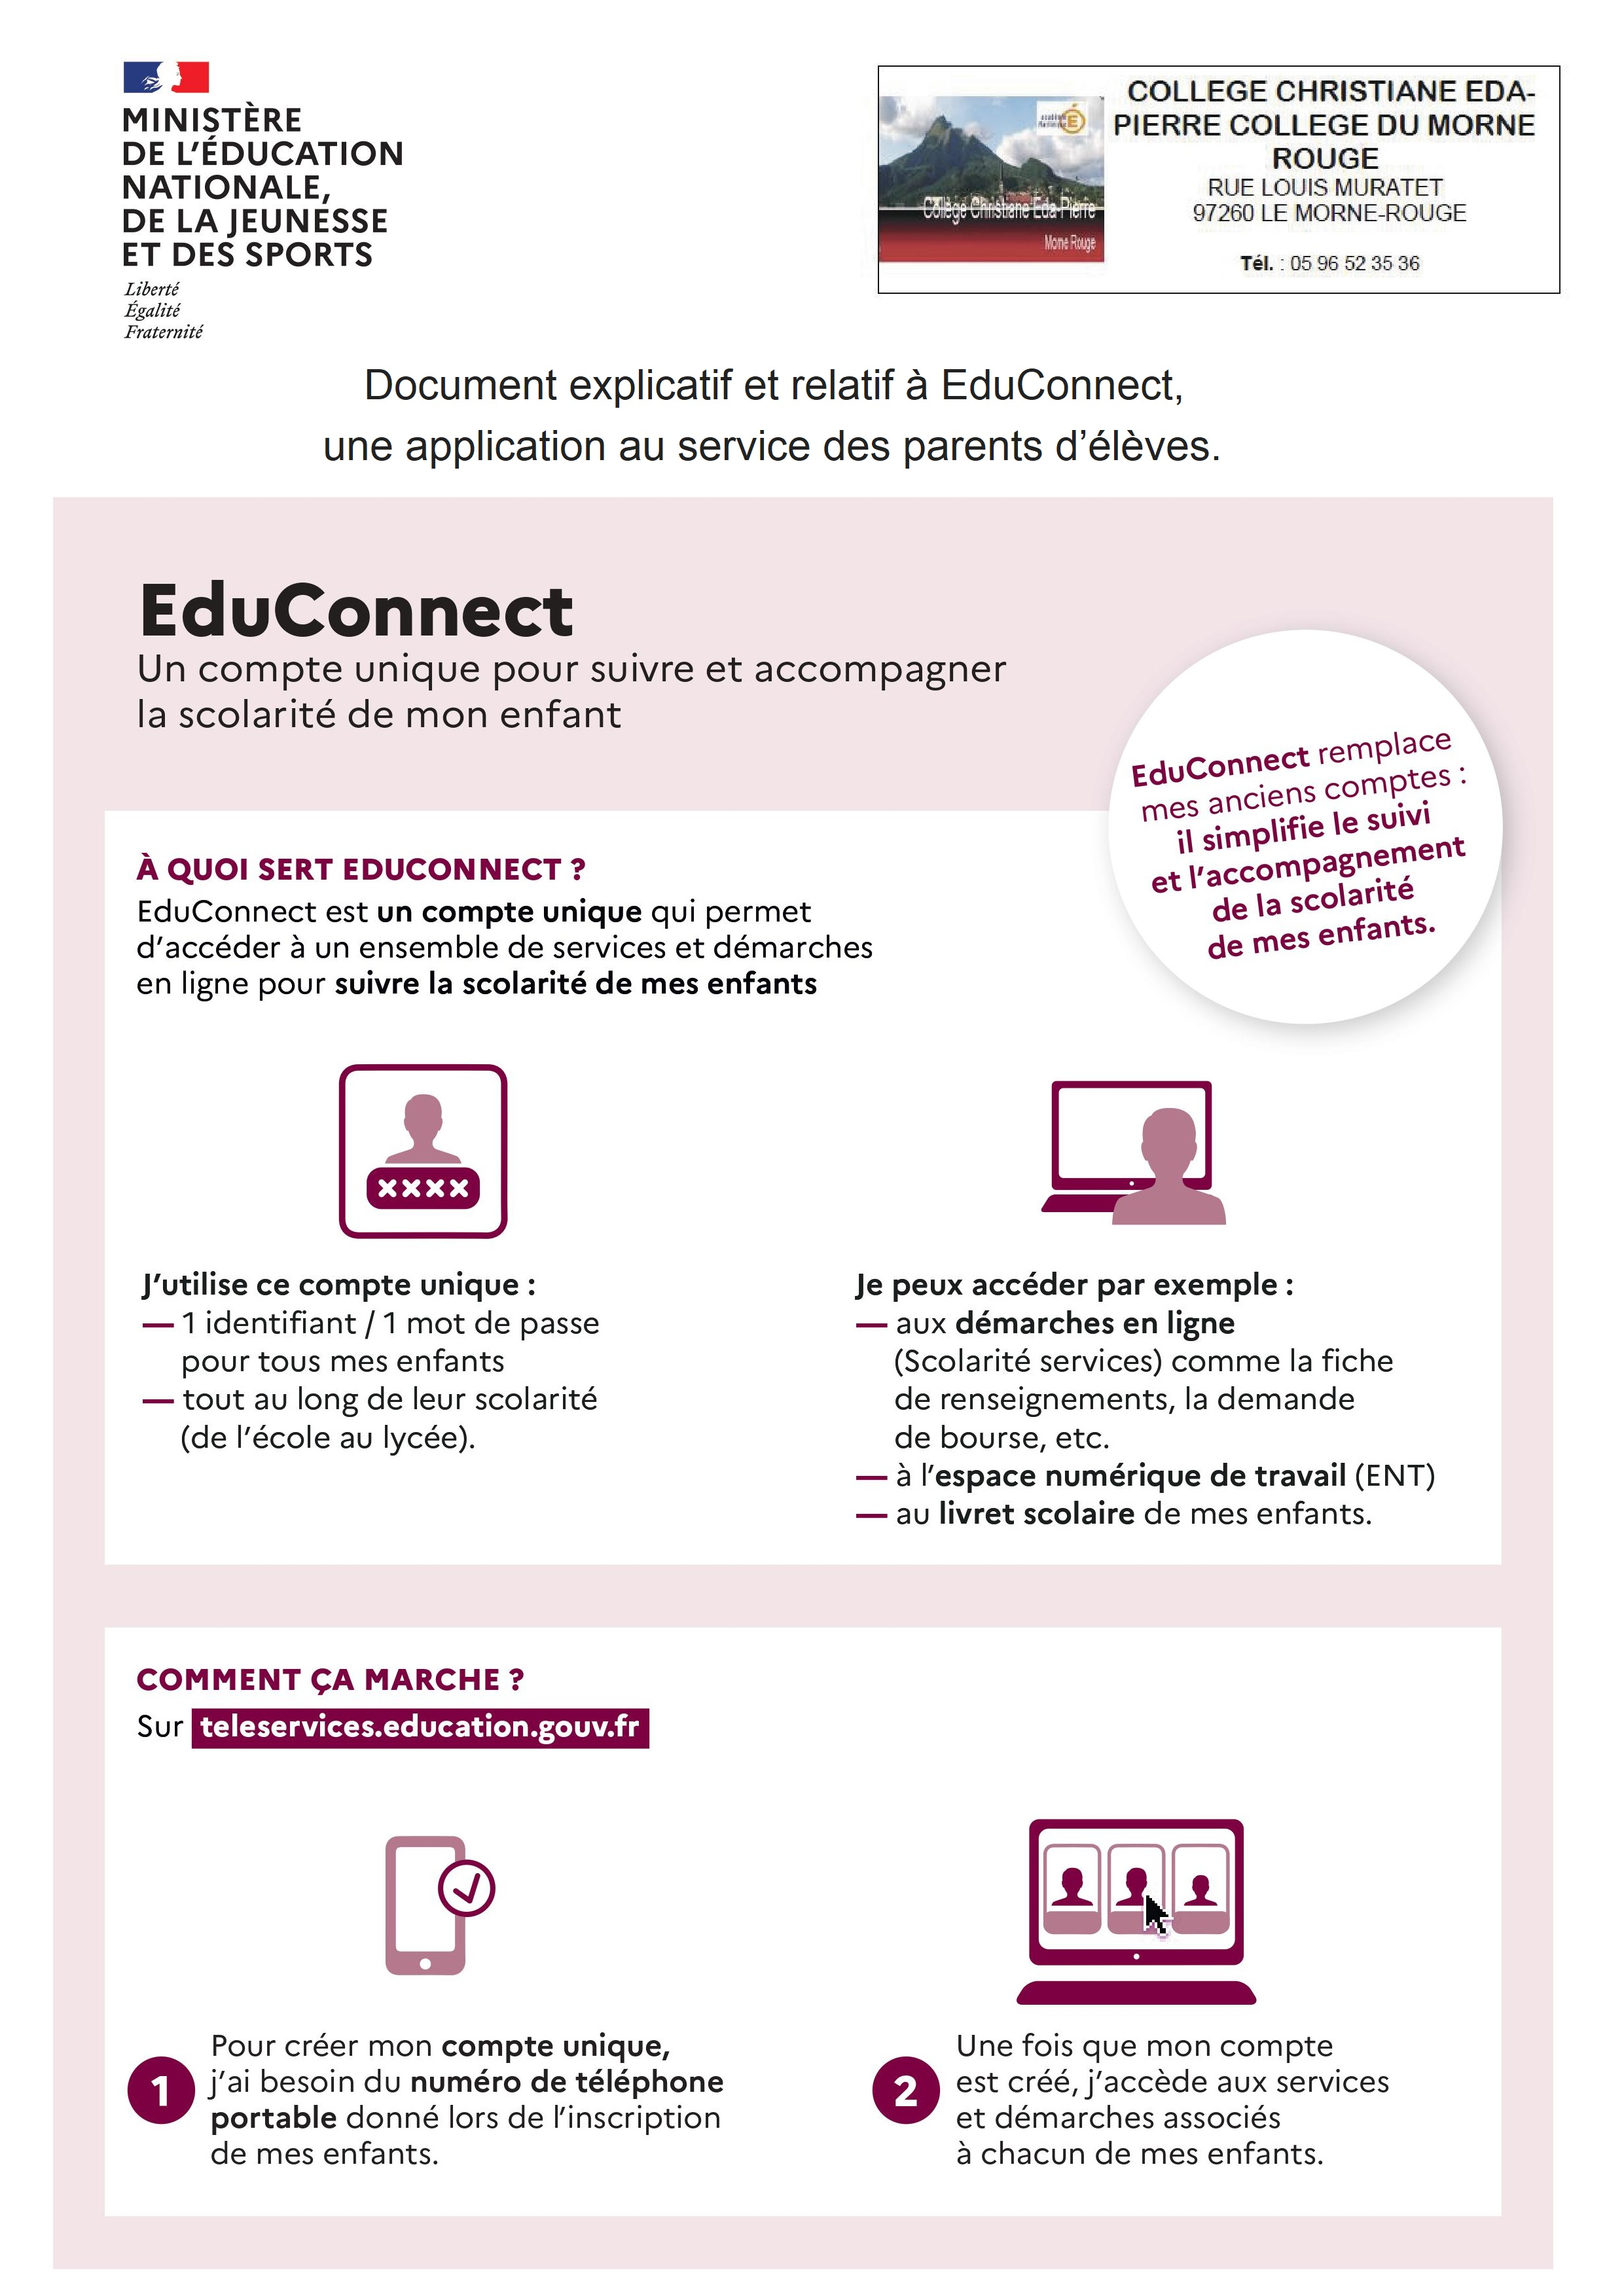 educonnect-guide-infographie